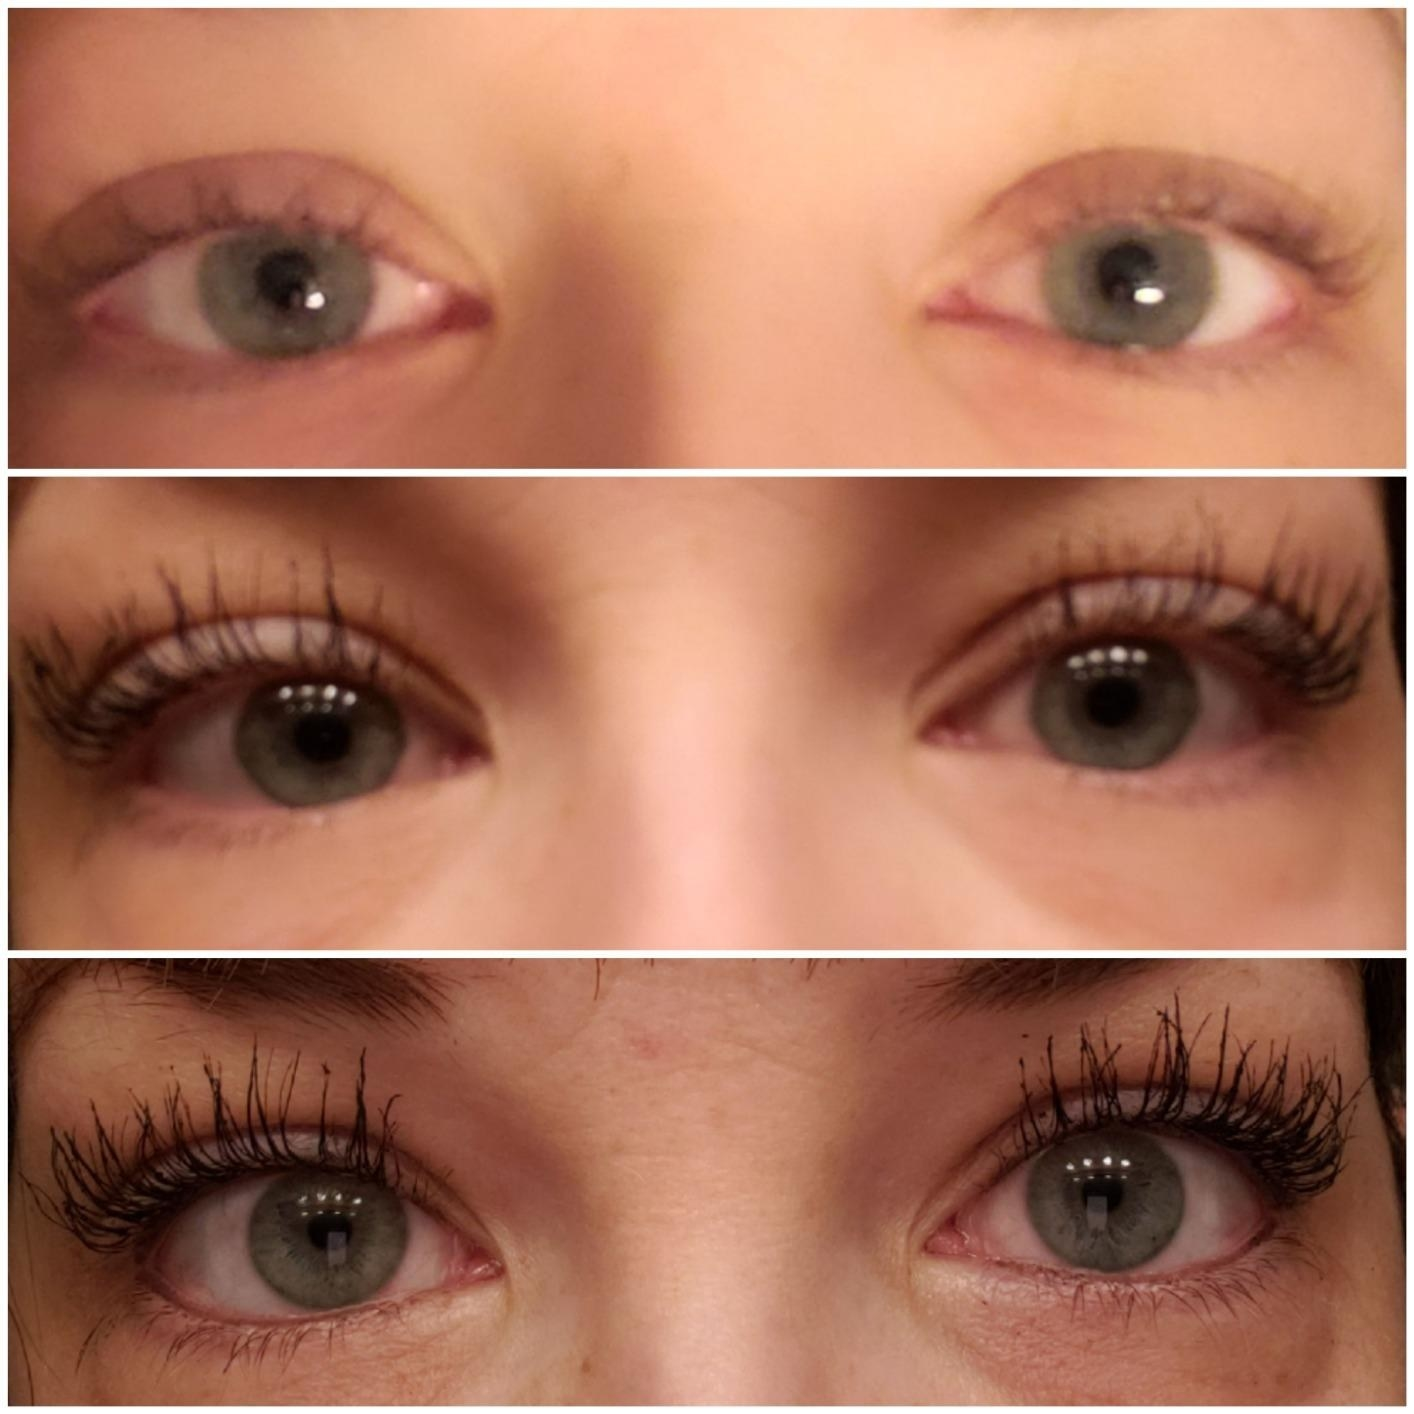 A reviewer's lashes before mascara, after one layer, and after two layers, with dramatic length and volume after